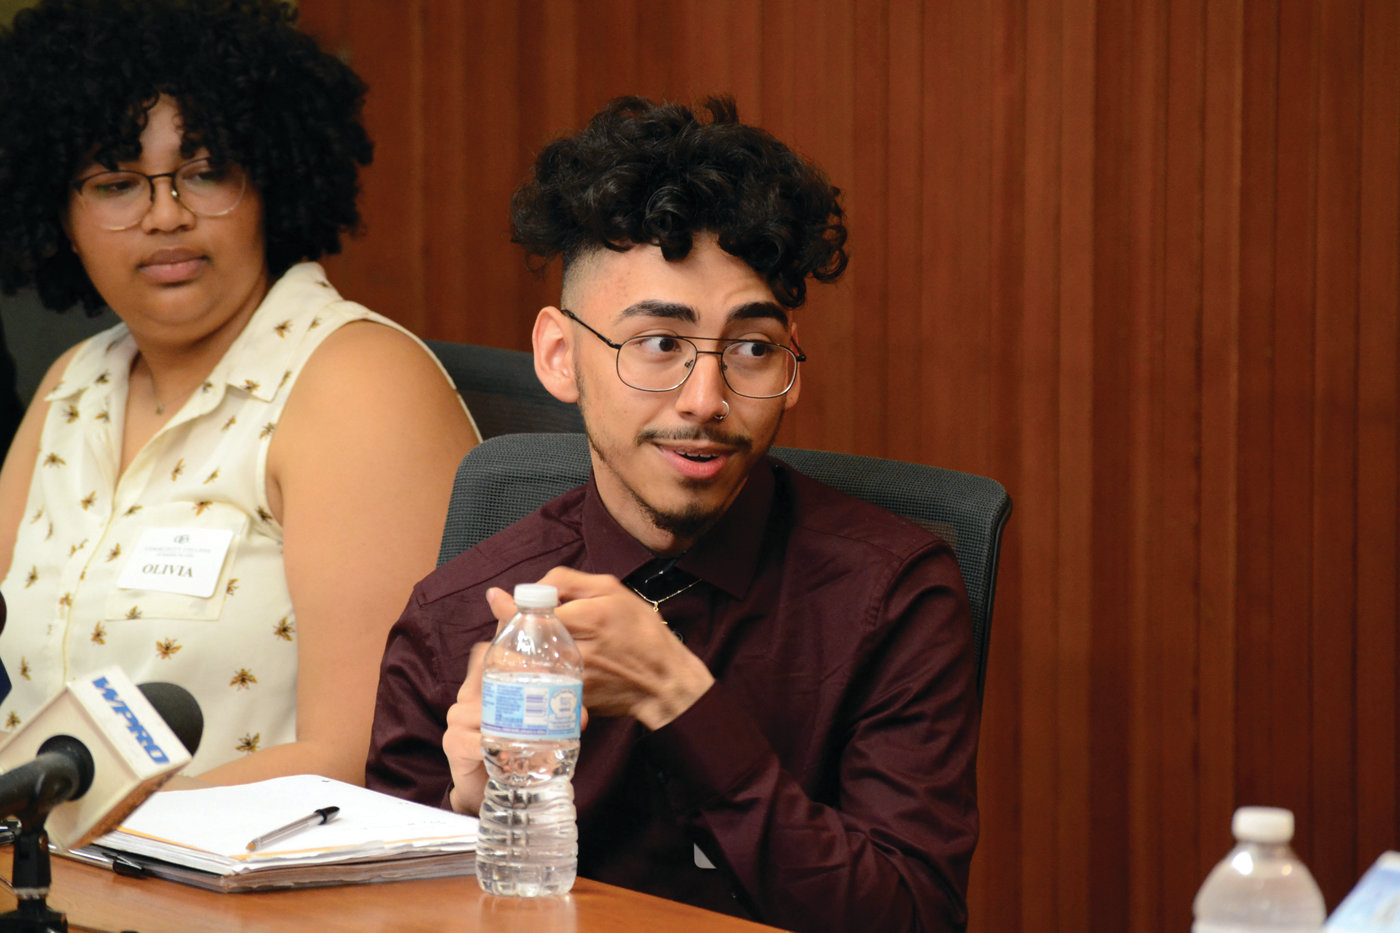 GOING PLACES: Andres Escobar, a first-generation American and first-generation college student, will graduate from CCRI with a 4.0 in May after just one year. He looks to go to school in Boston or at Brown.